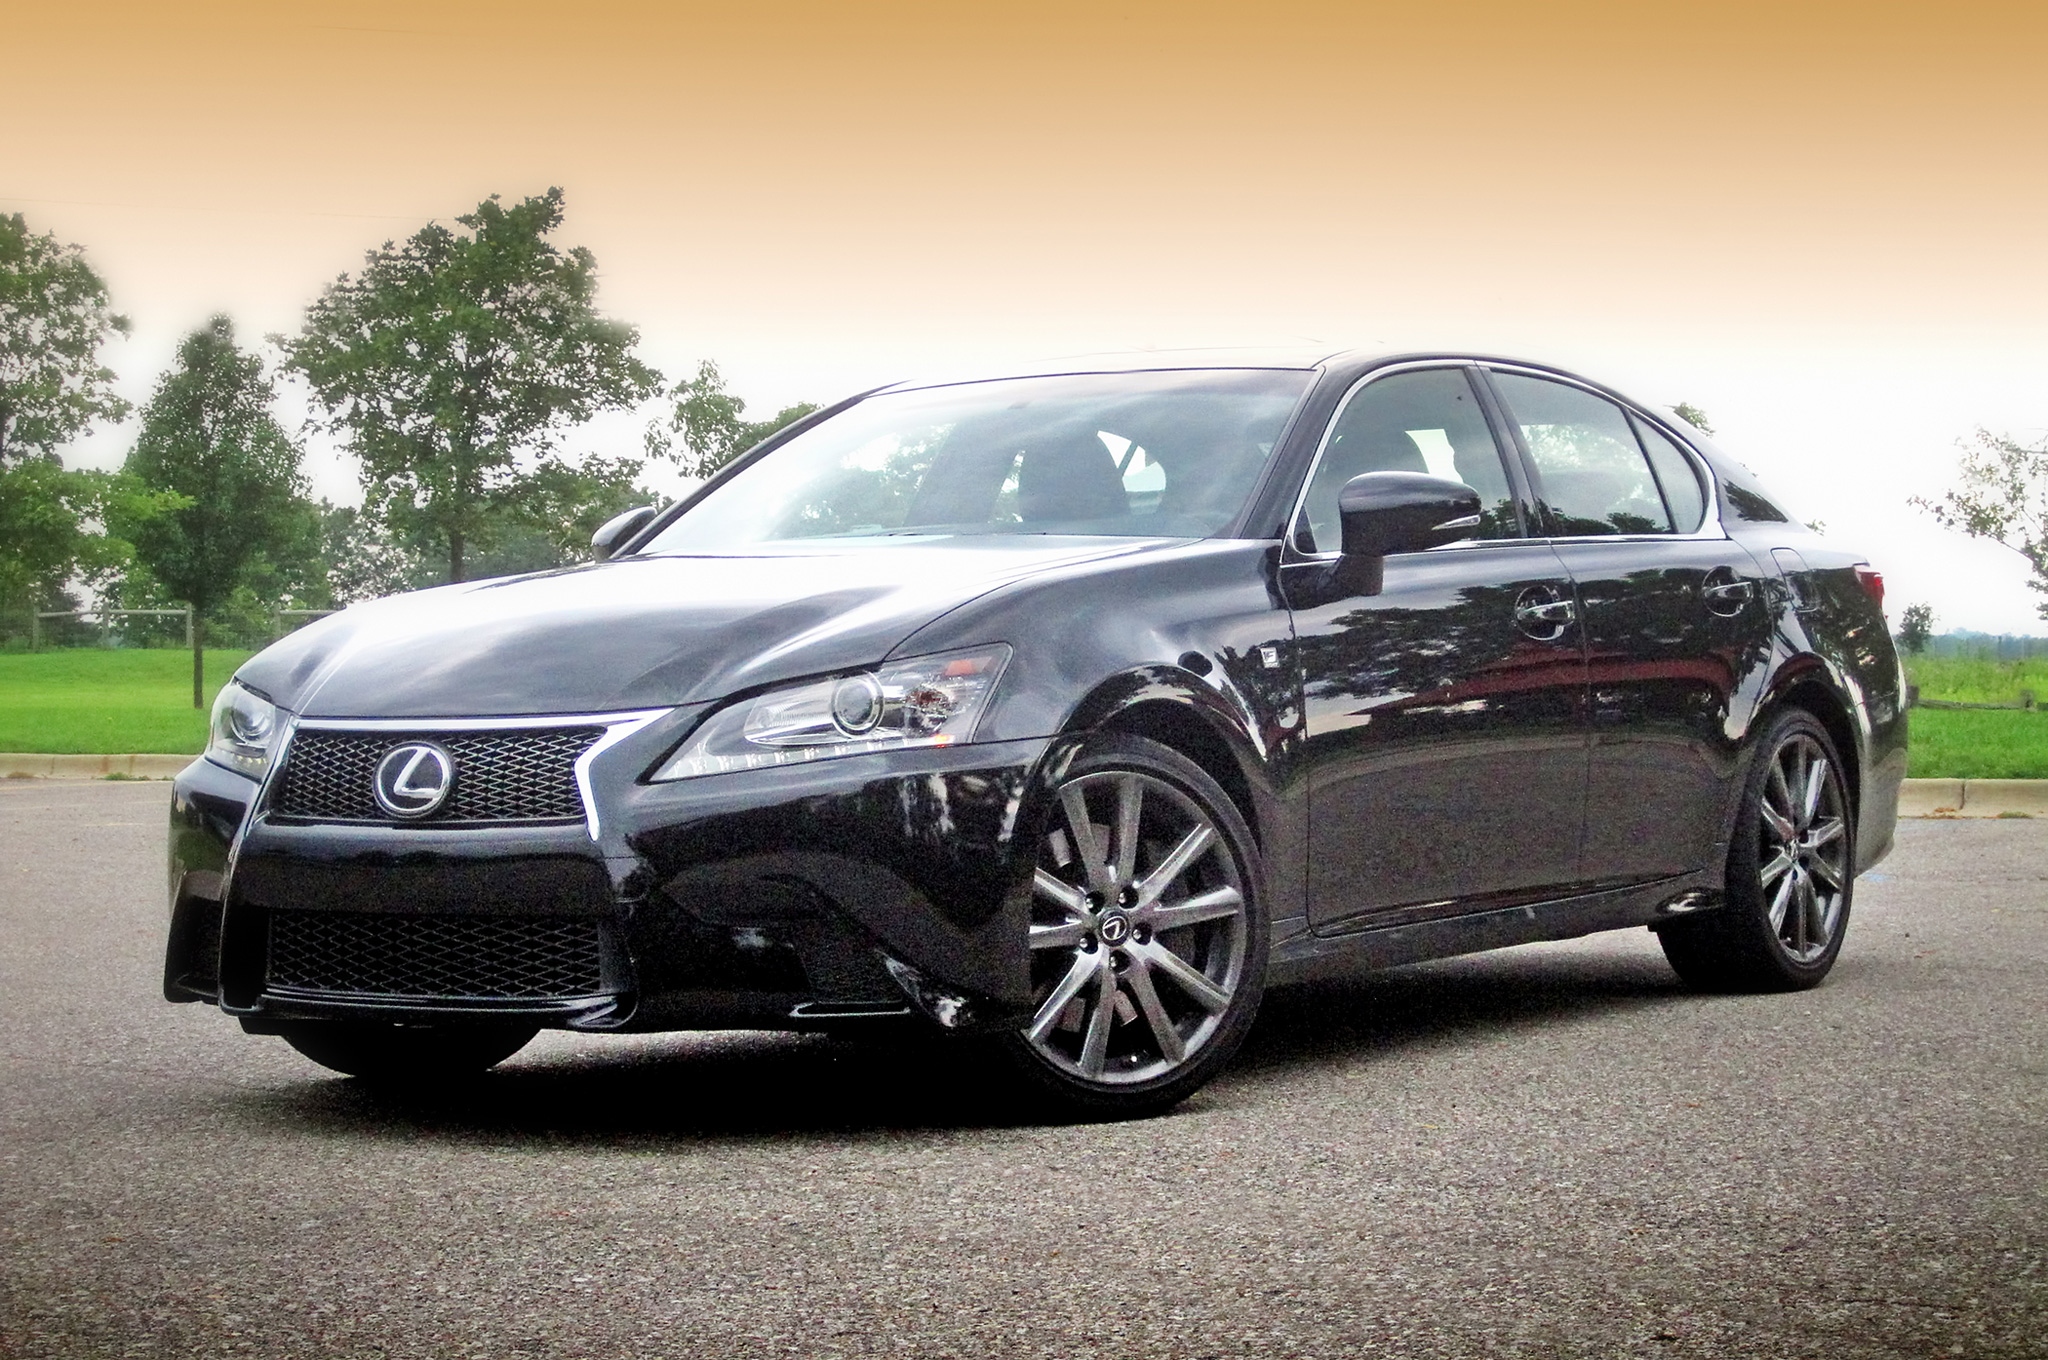 My Week in a 2013 Lexus GS 350 F Sport Motor Trend